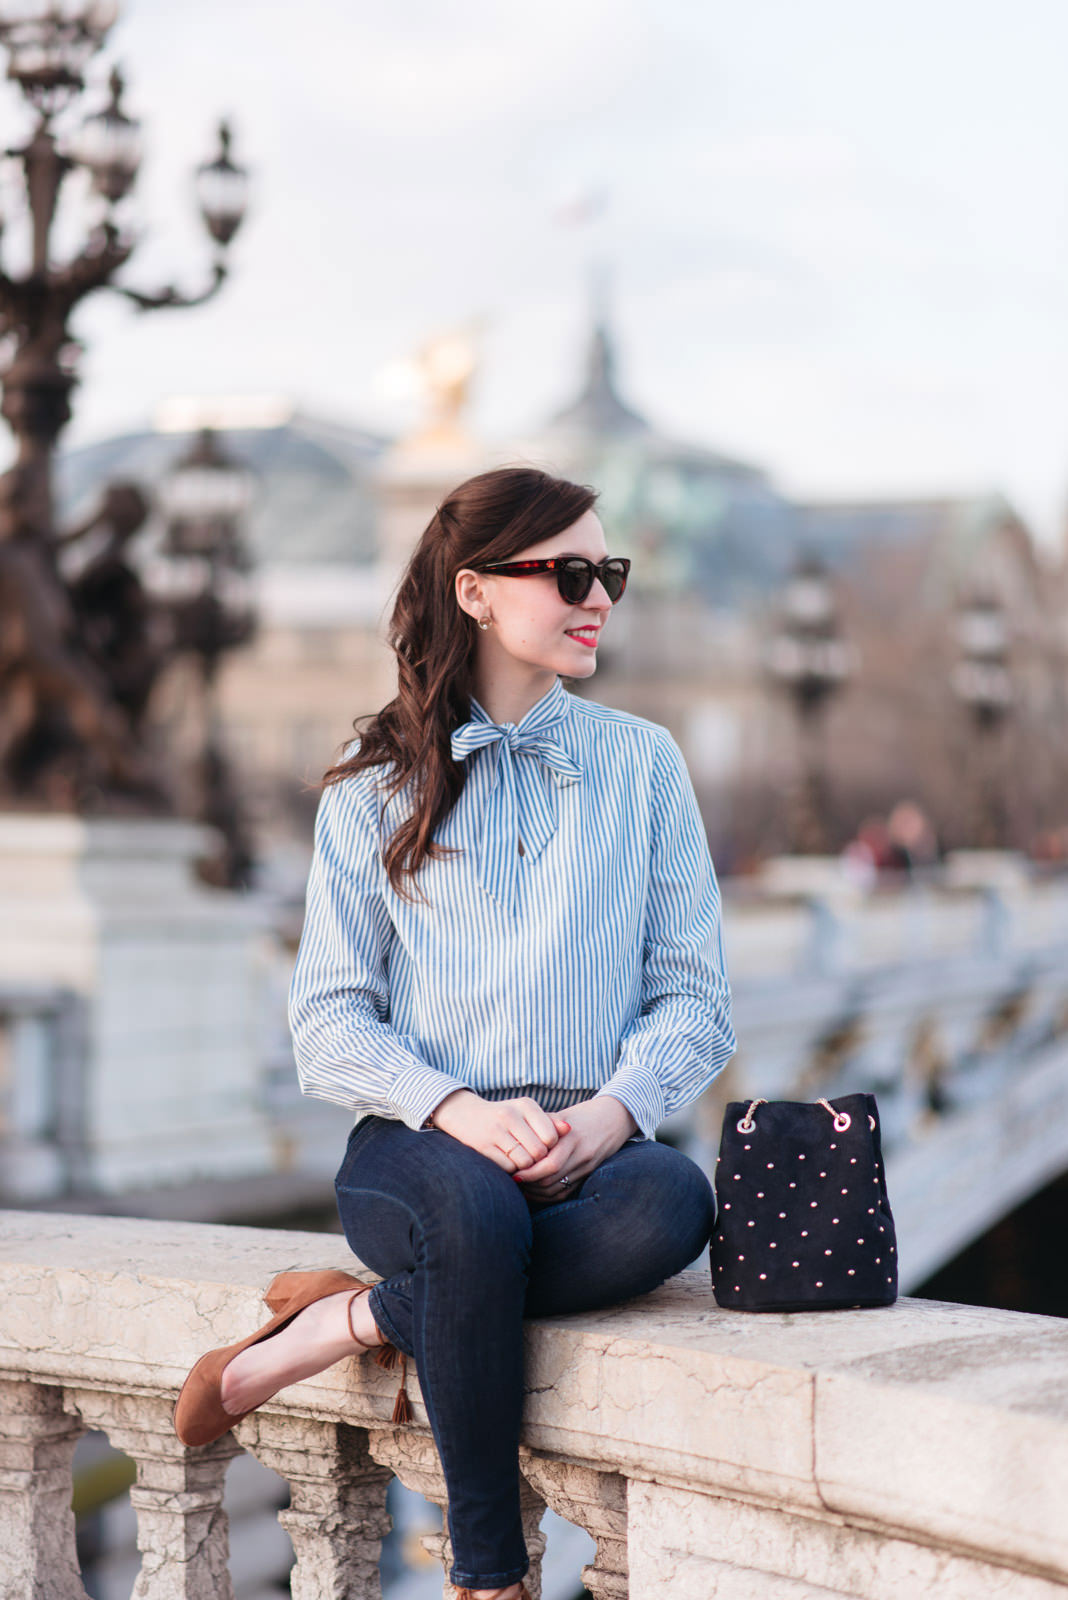 Blog-Mode-And-The-City-Looks-En-Sezane-Sur-Le-Pont-Alexandre-III-8